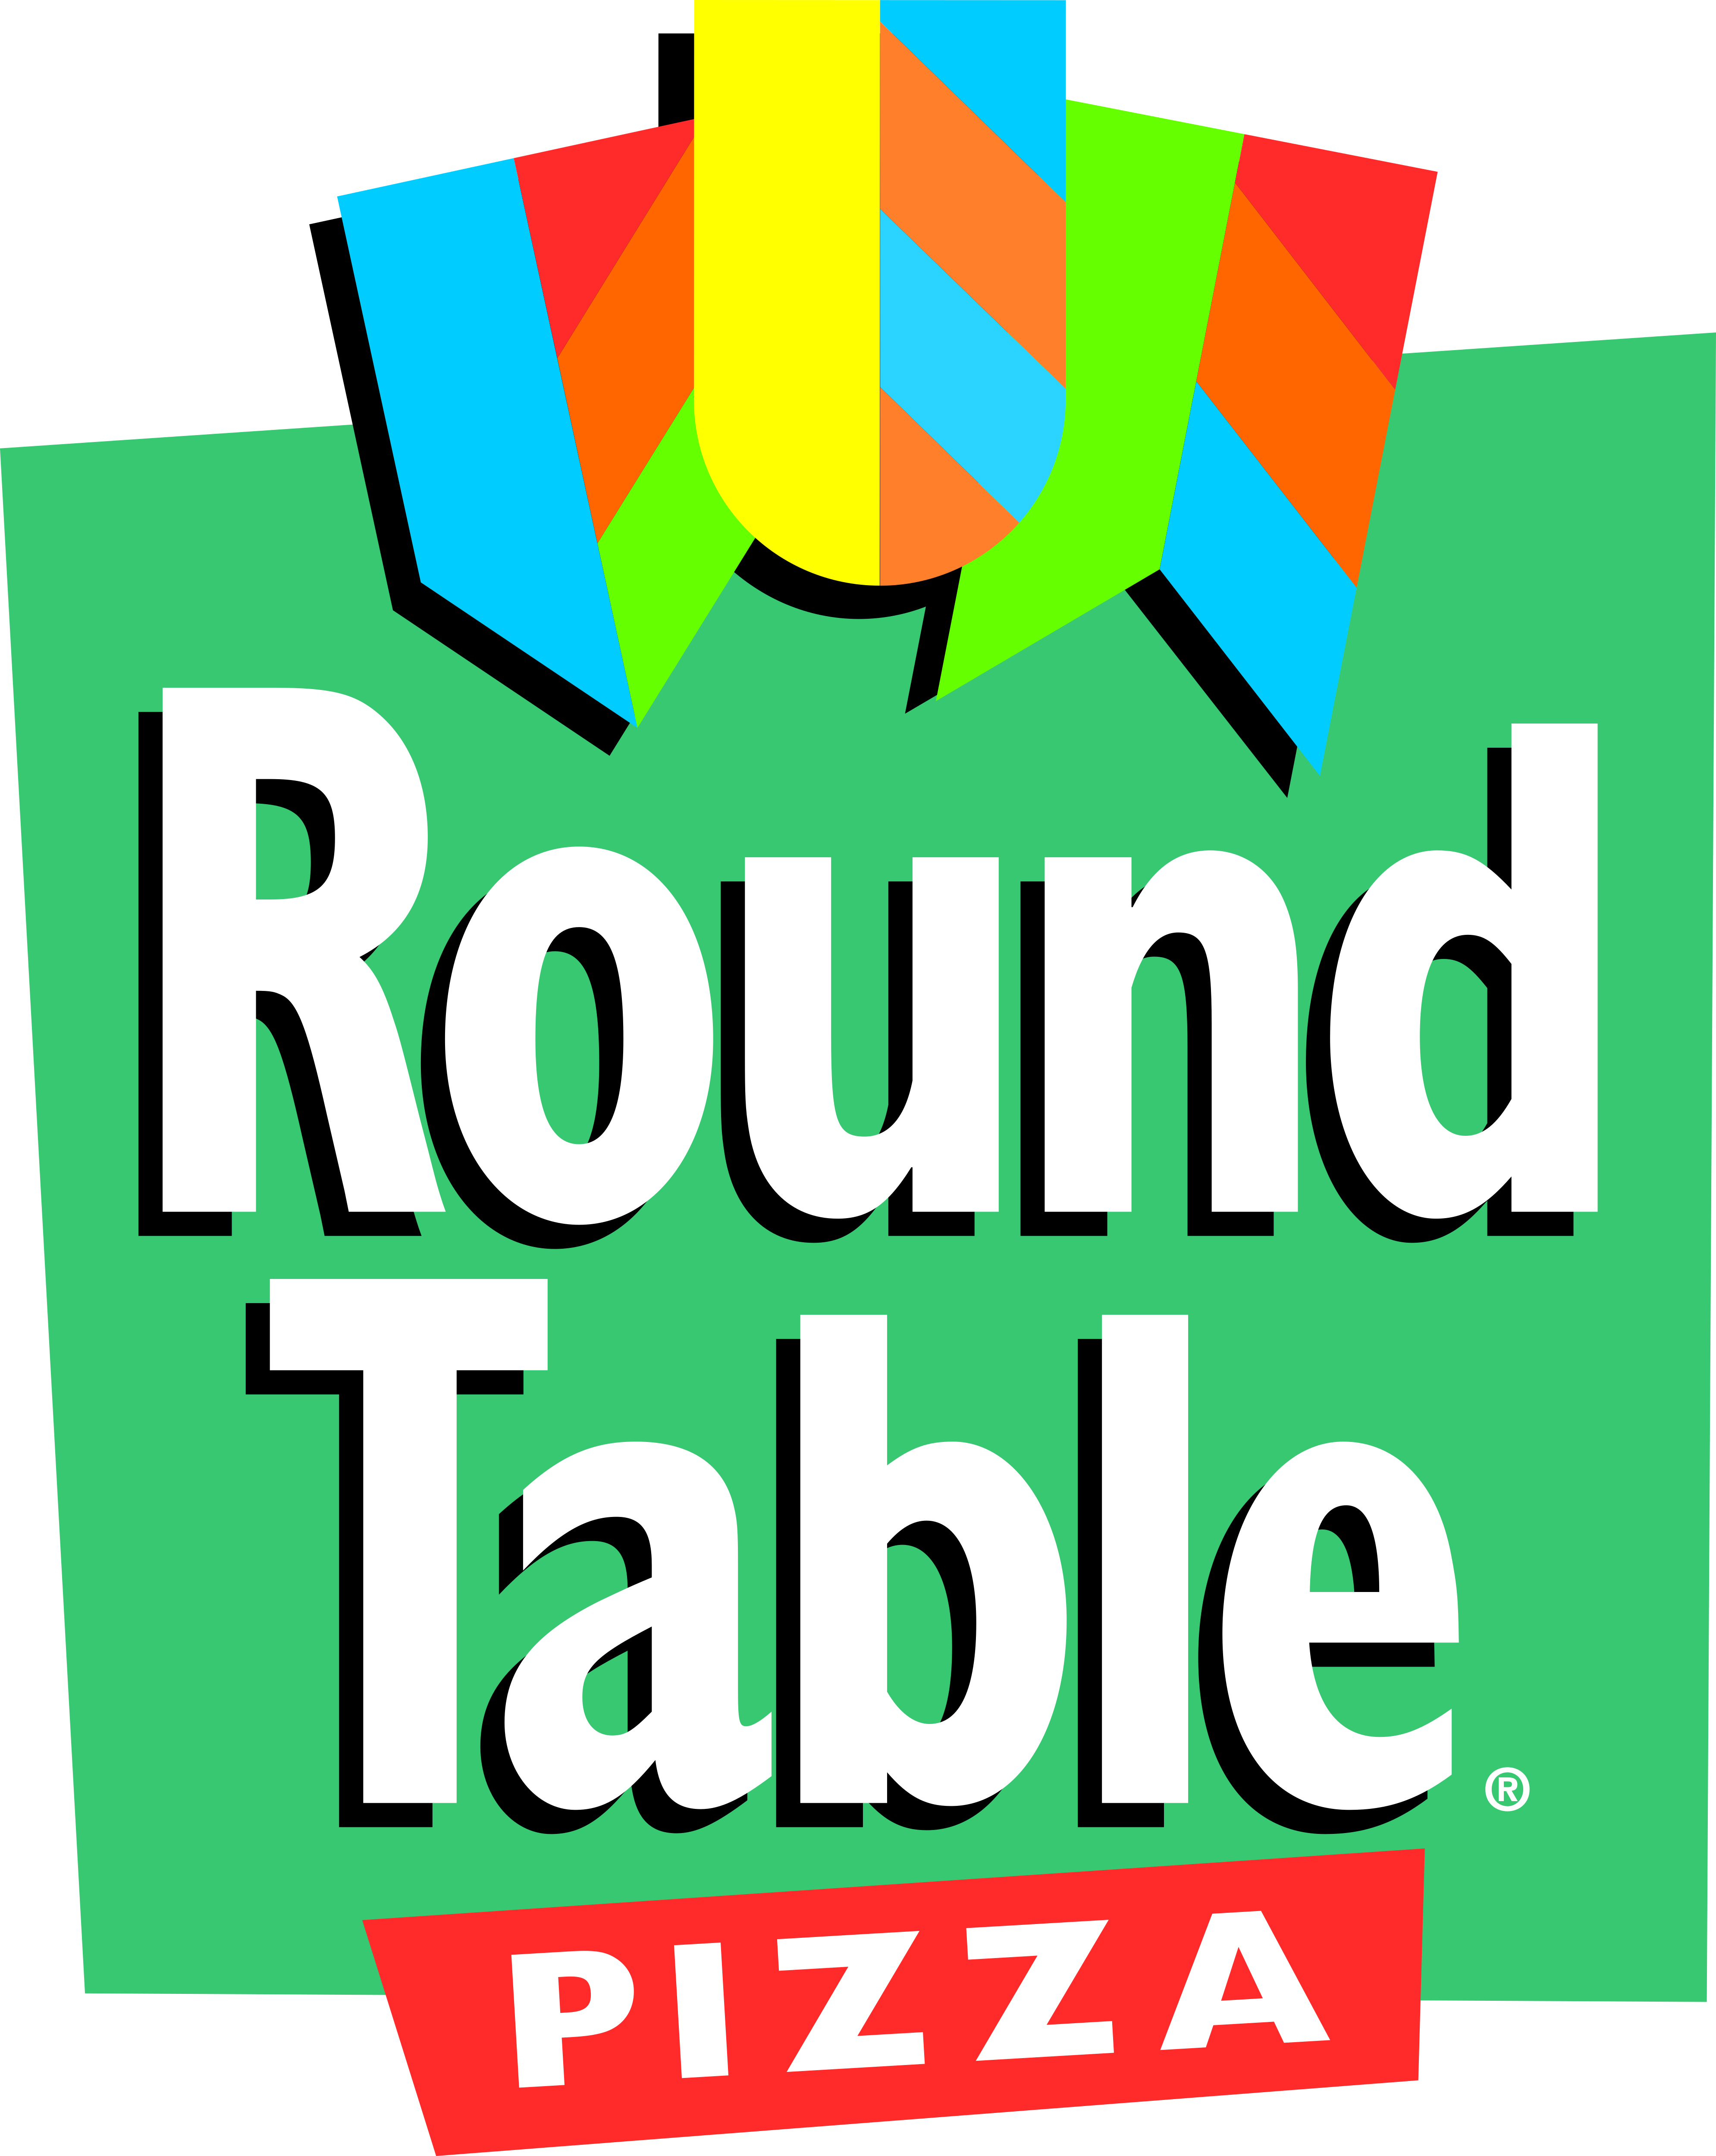 Round Table Pizza Logos Download